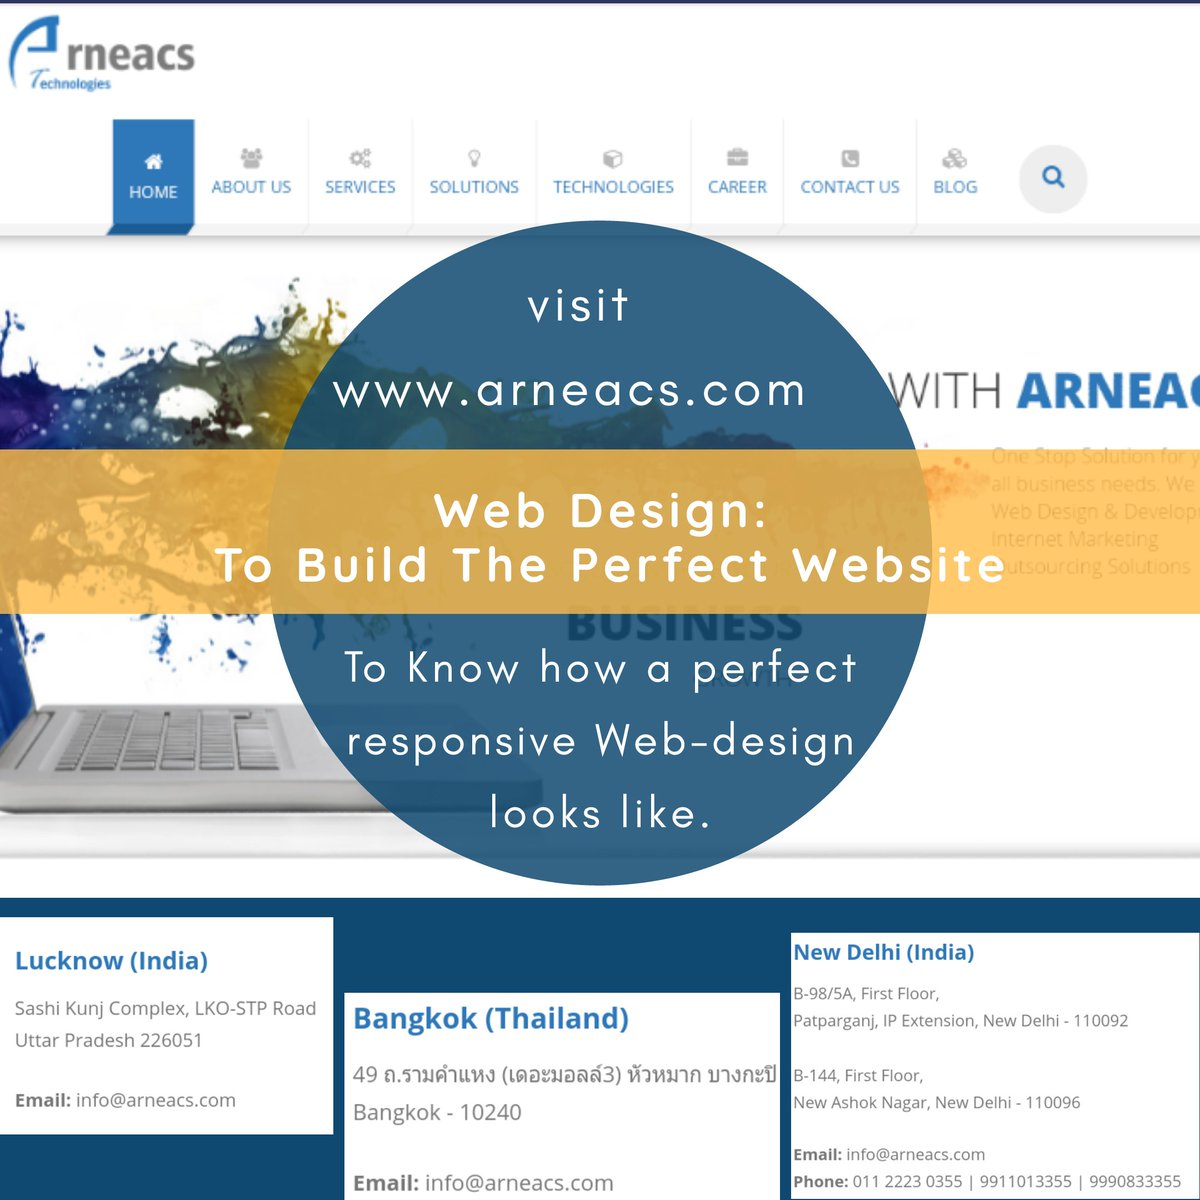 Just visit -  http://www. arneacs.com    , the website is a perfect example of a seamless web-design.  Read more-  http://www. arneacs.com/web-design-to- build-the-perfect-website.html  …   #arneacs #ITservices #webdesign #websitedesigns #responsivewebdesign #designanddevelopment #delhiwebdevelopment #delhi #websitedesigning<br>http://pic.twitter.com/uuIxEAFEfa